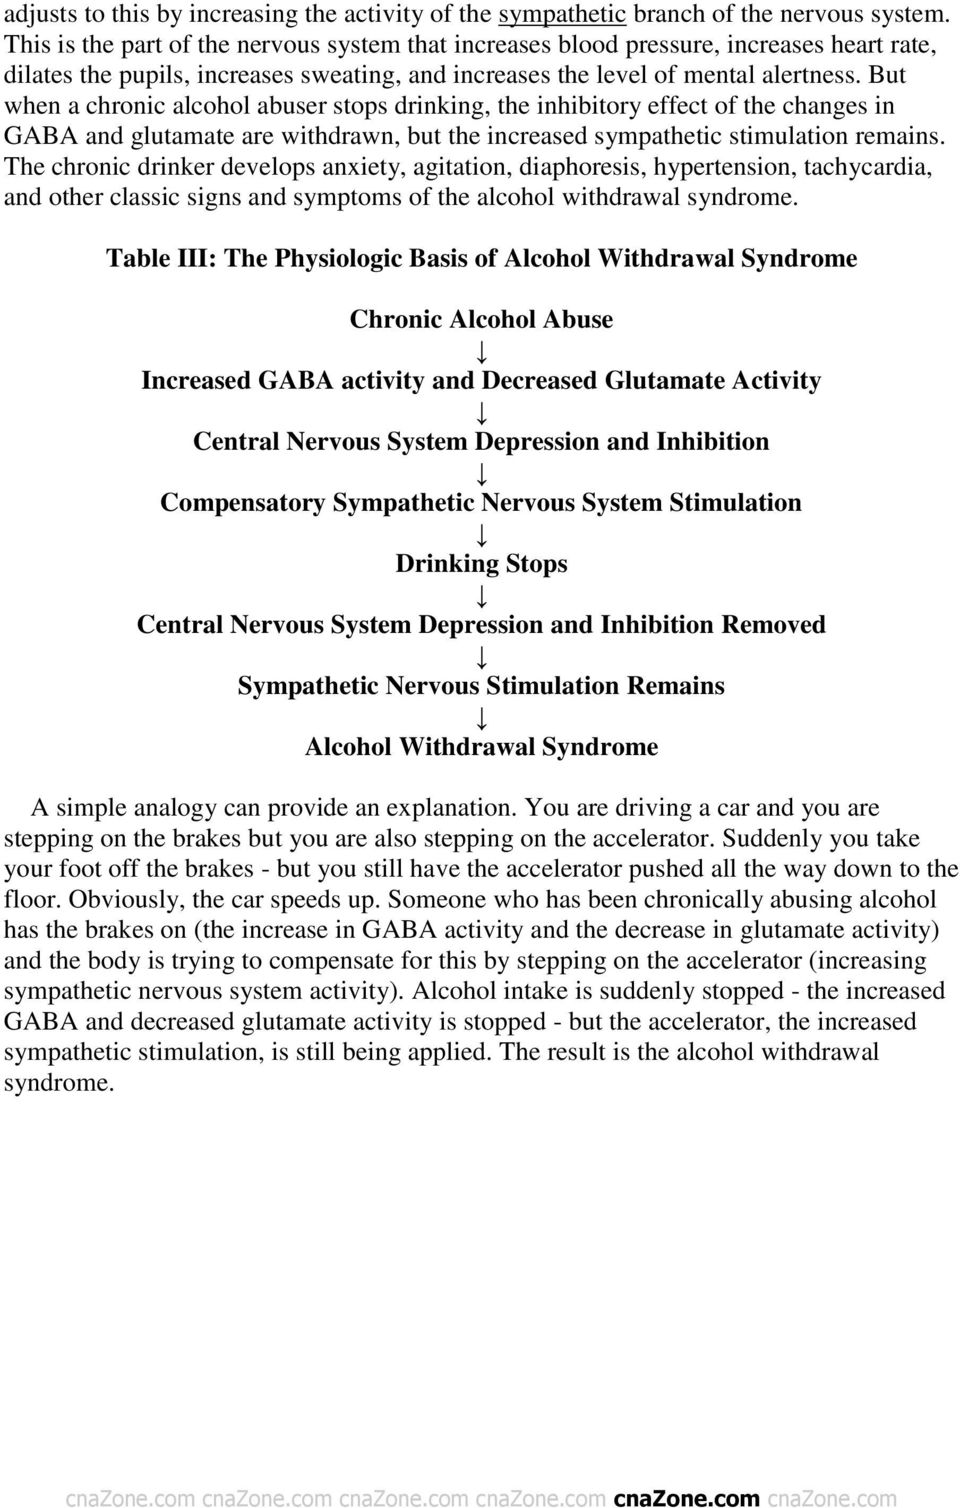 But when a chronic alcohol abuser stops drinking, the inhibitory effect of the changes in GABA and glutamate are withdrawn, but the increased sympathetic stimulation remains.